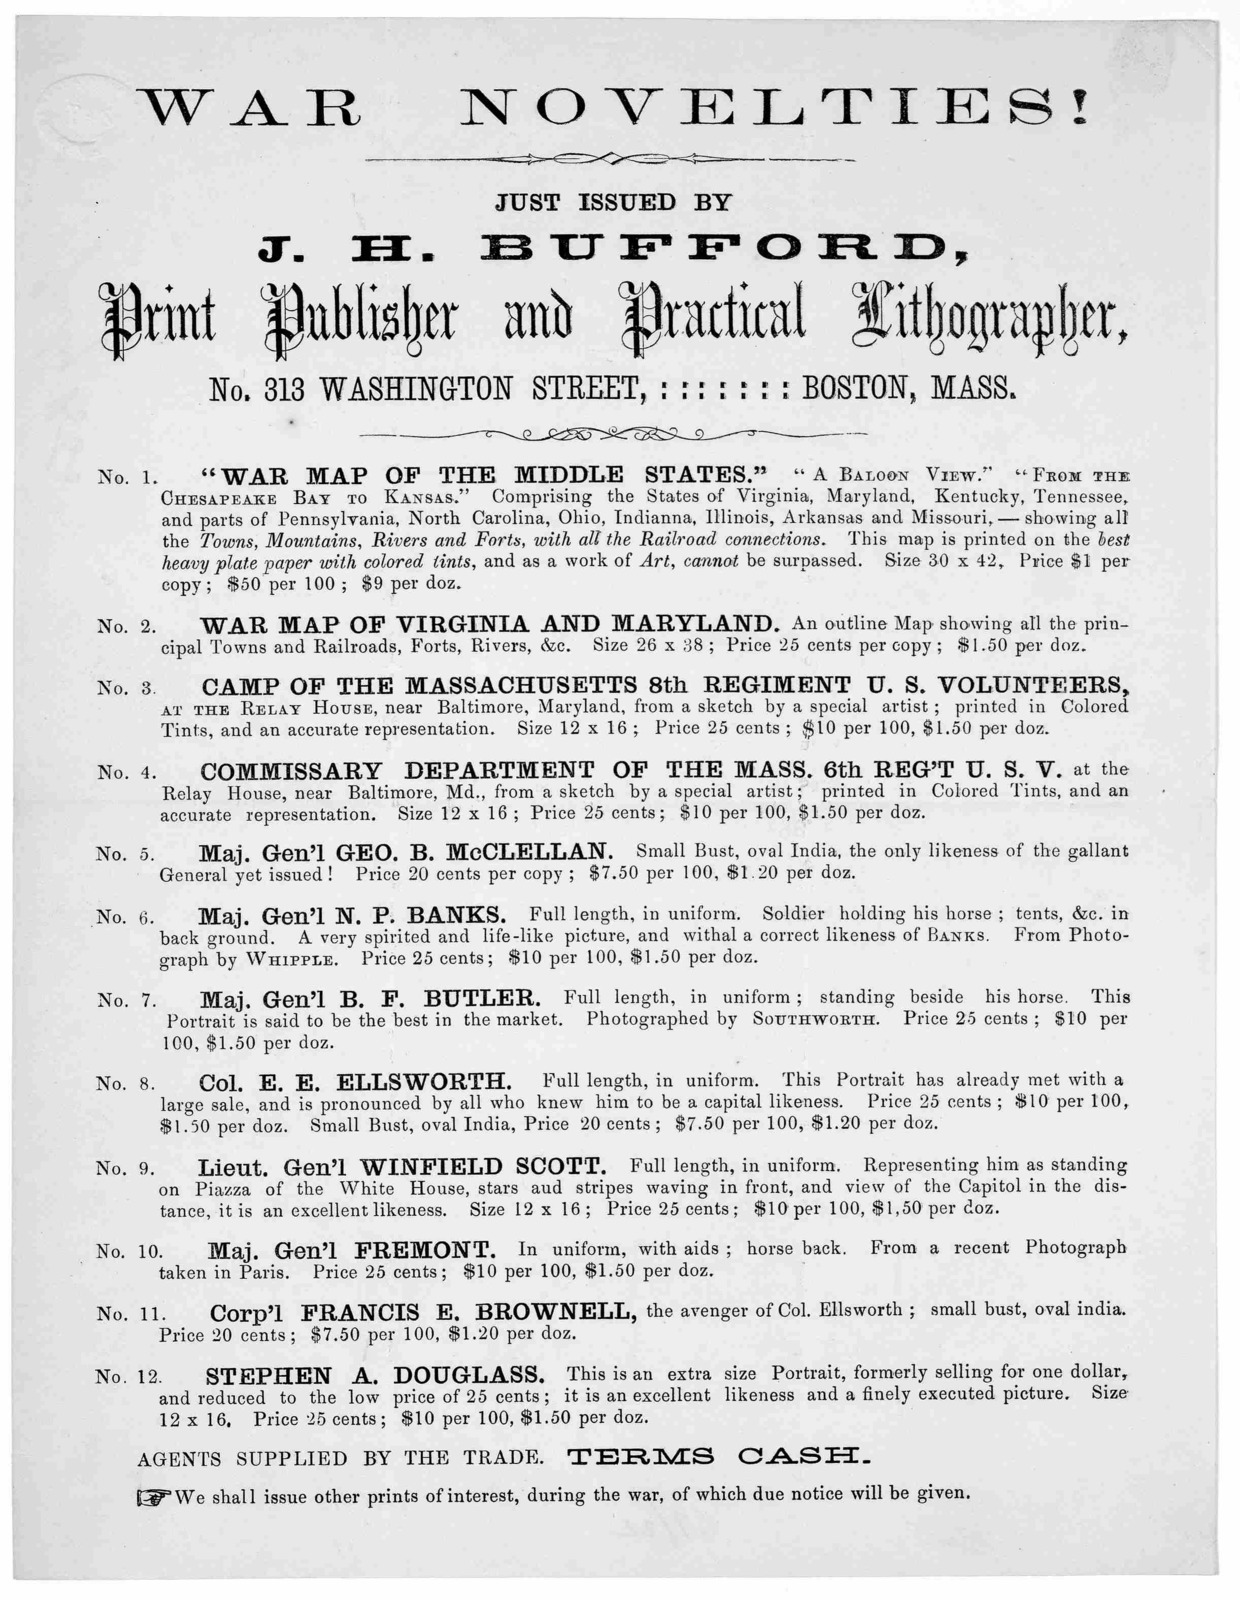 War novelties! Just issued by J. H. Bufford, print publisher and practical lithographer, No. 313 Washington Street. Boston, Mass ... Terms cash. [1861].